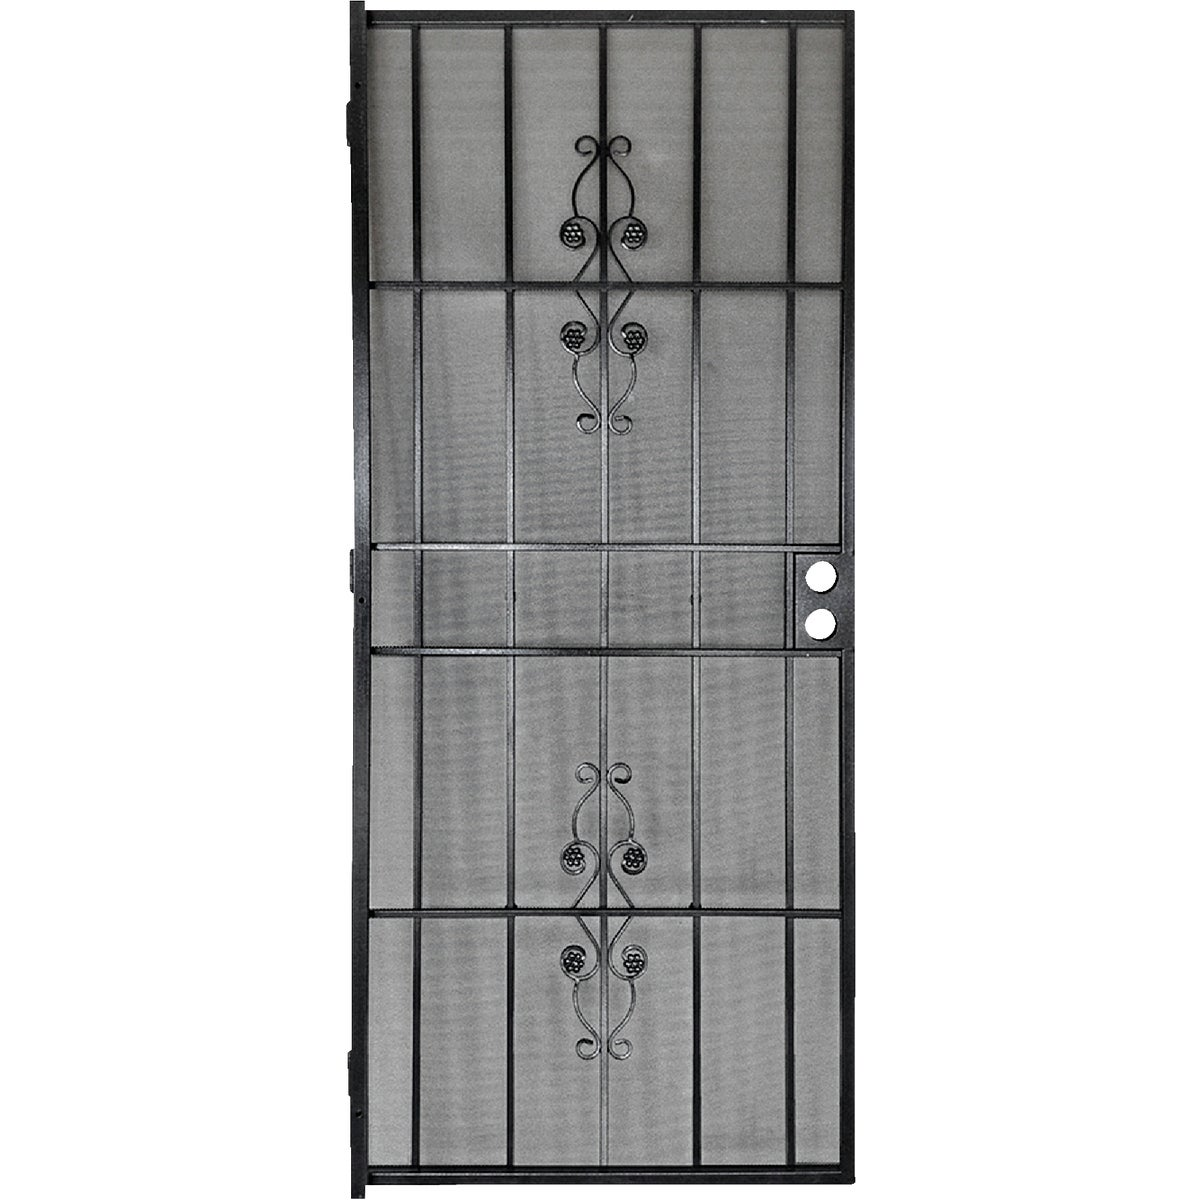 Item 181978, Steel security door featuring powder coated finish with matching 24-gauge expanded steel mesh for added security.